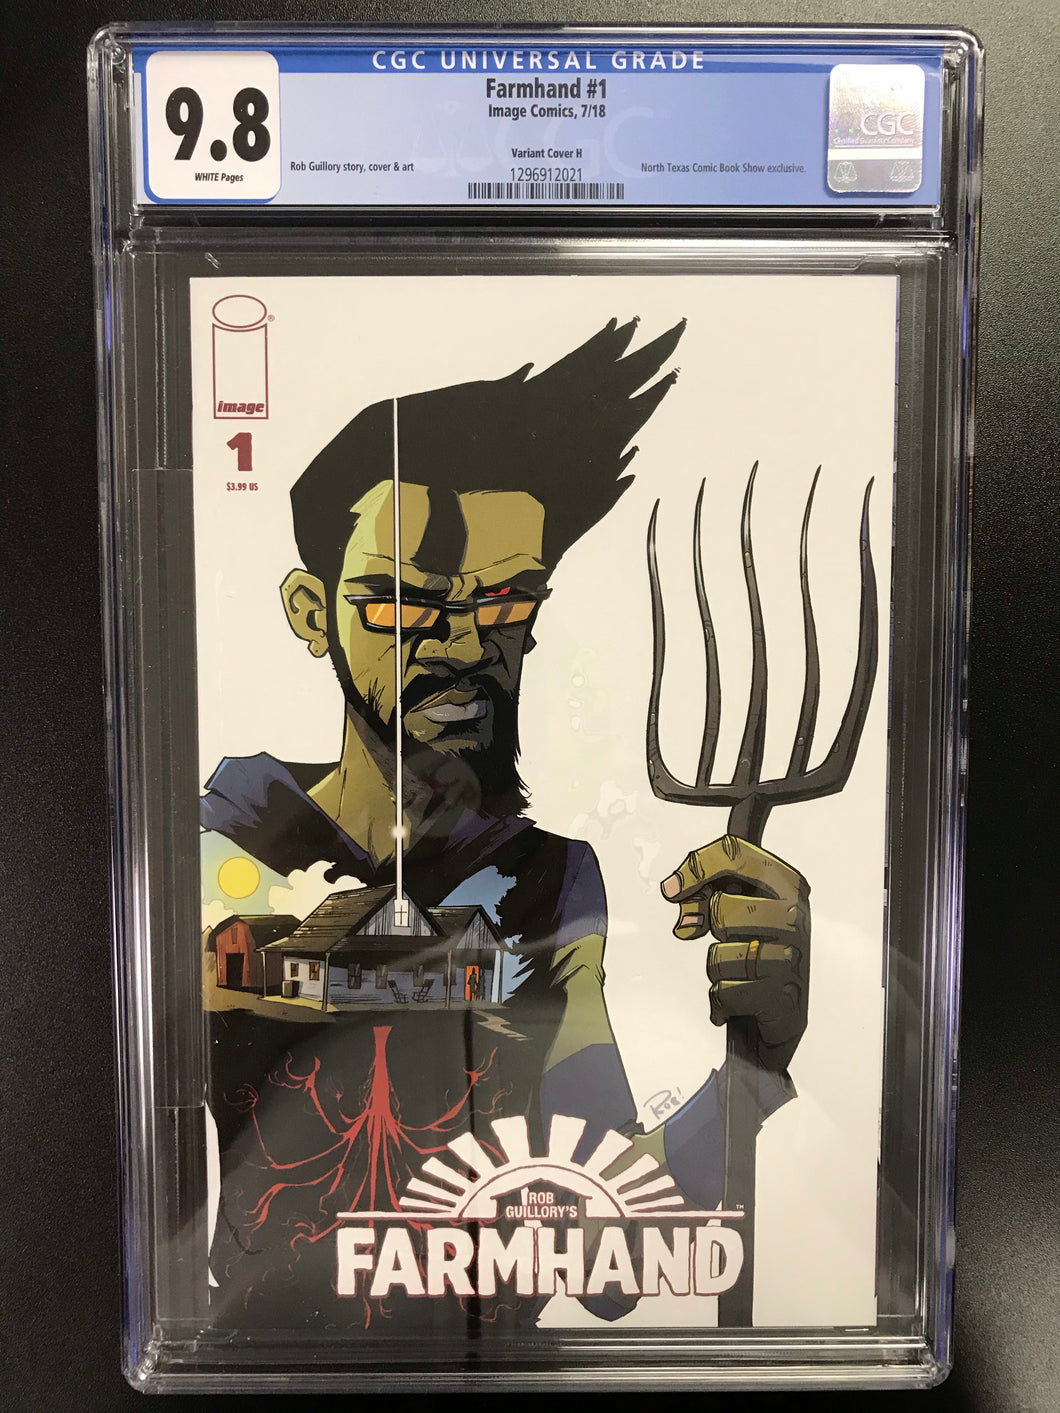 FARMHAND #1 BTC EXCLUSIVE CGC 9.8